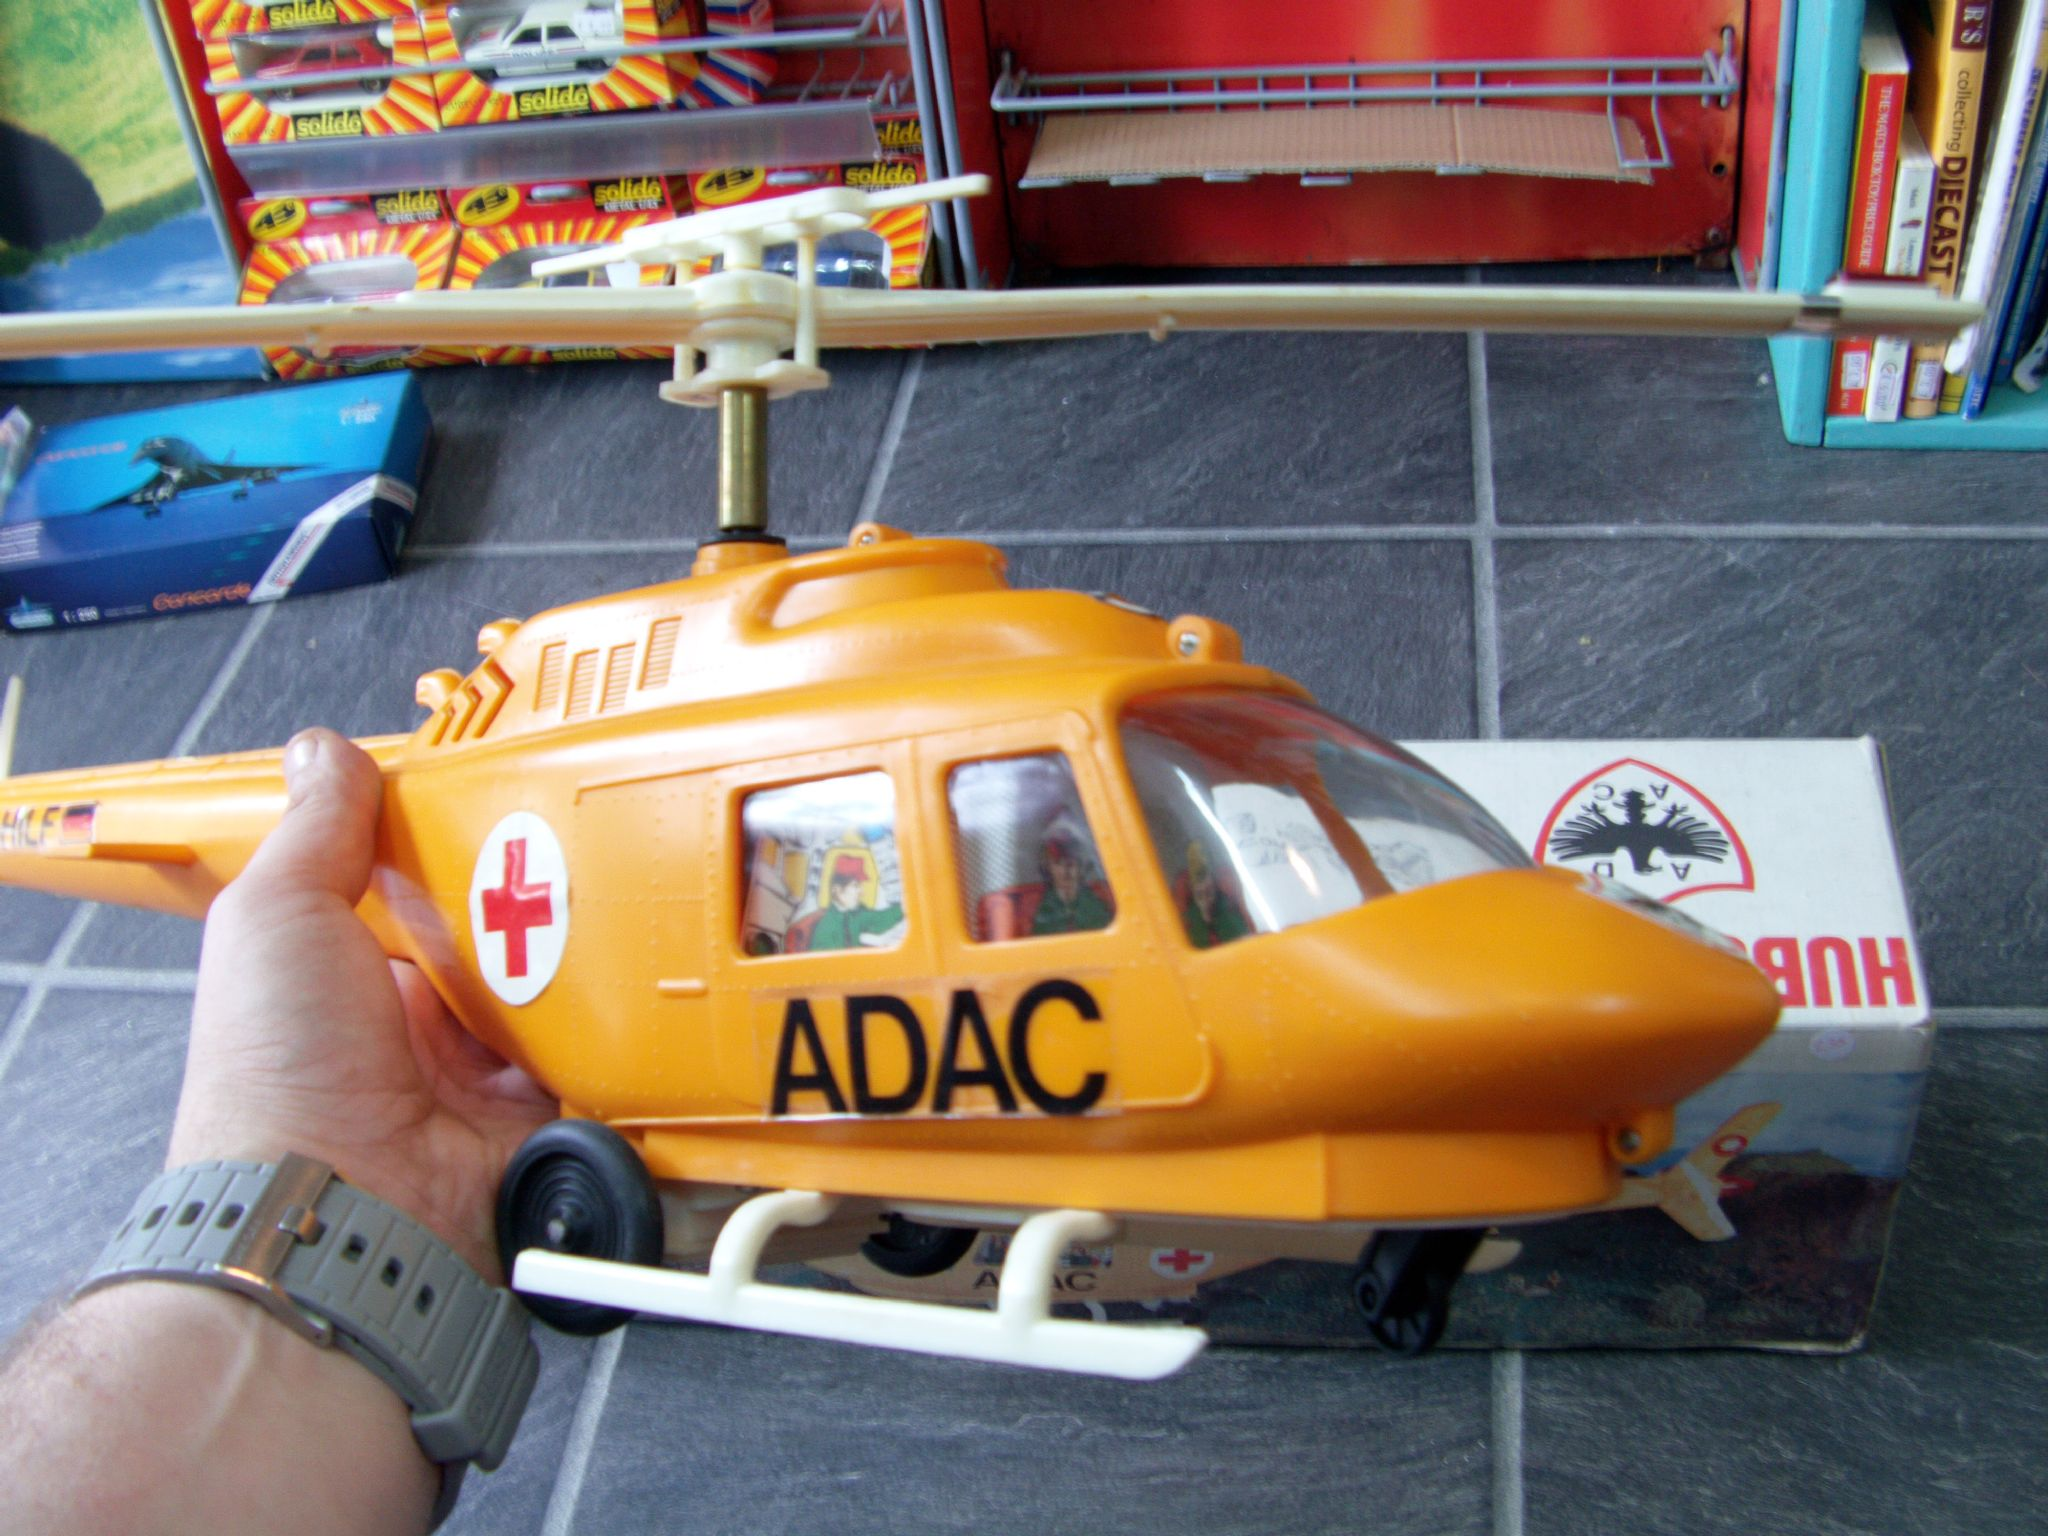 hubschrauber adac vintage air ambulance battery operated. Black Bedroom Furniture Sets. Home Design Ideas